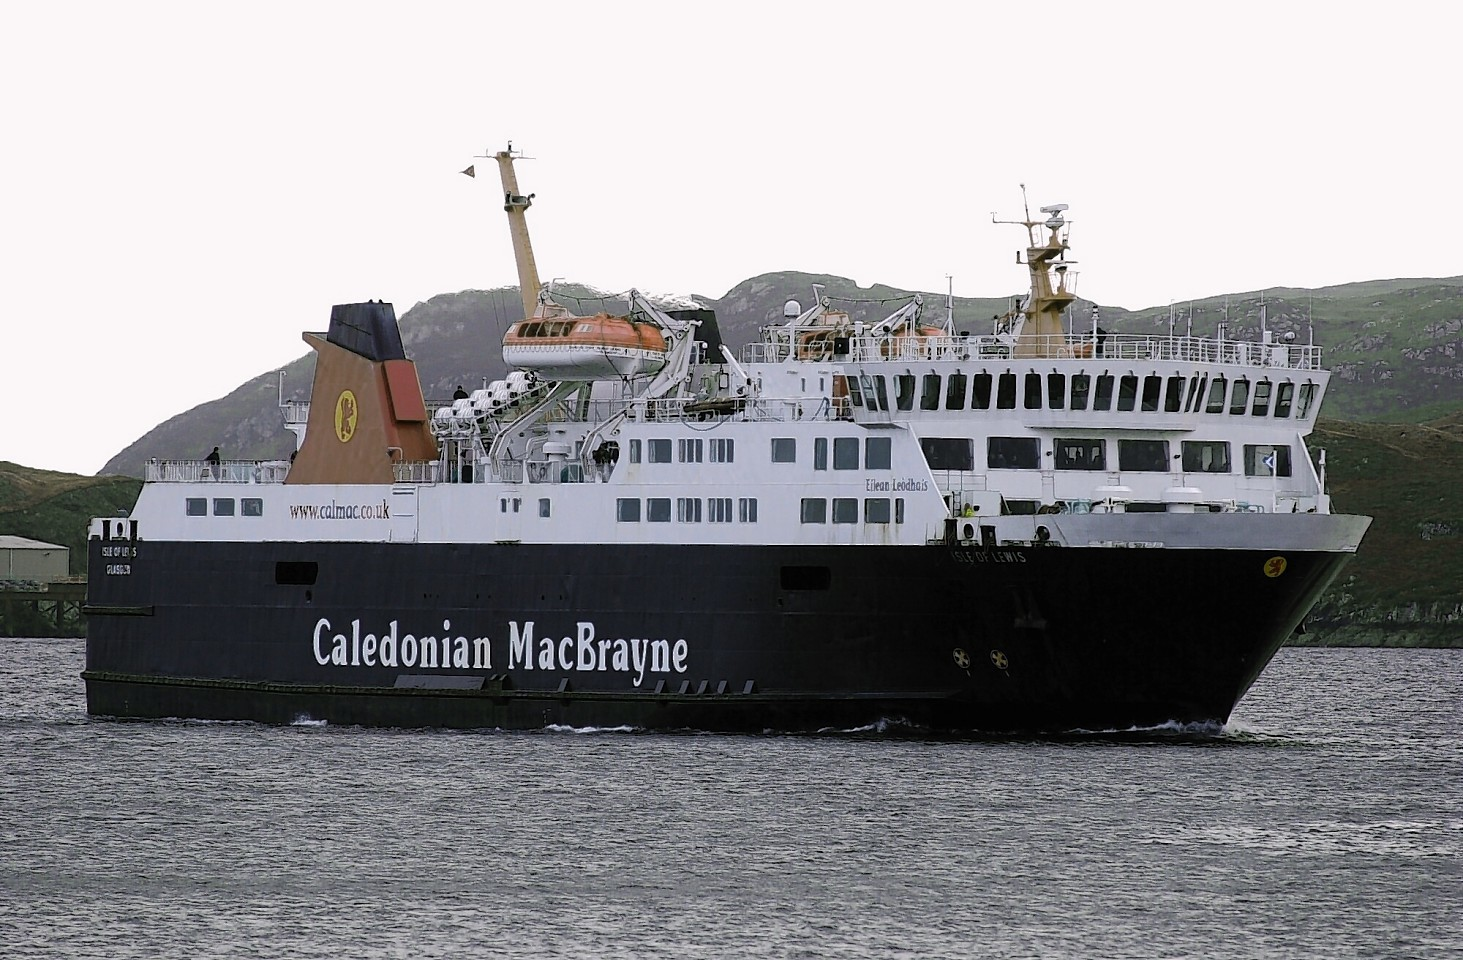 The MV Isle of Lewis had been stranded in Barra in the earlier parts of this week